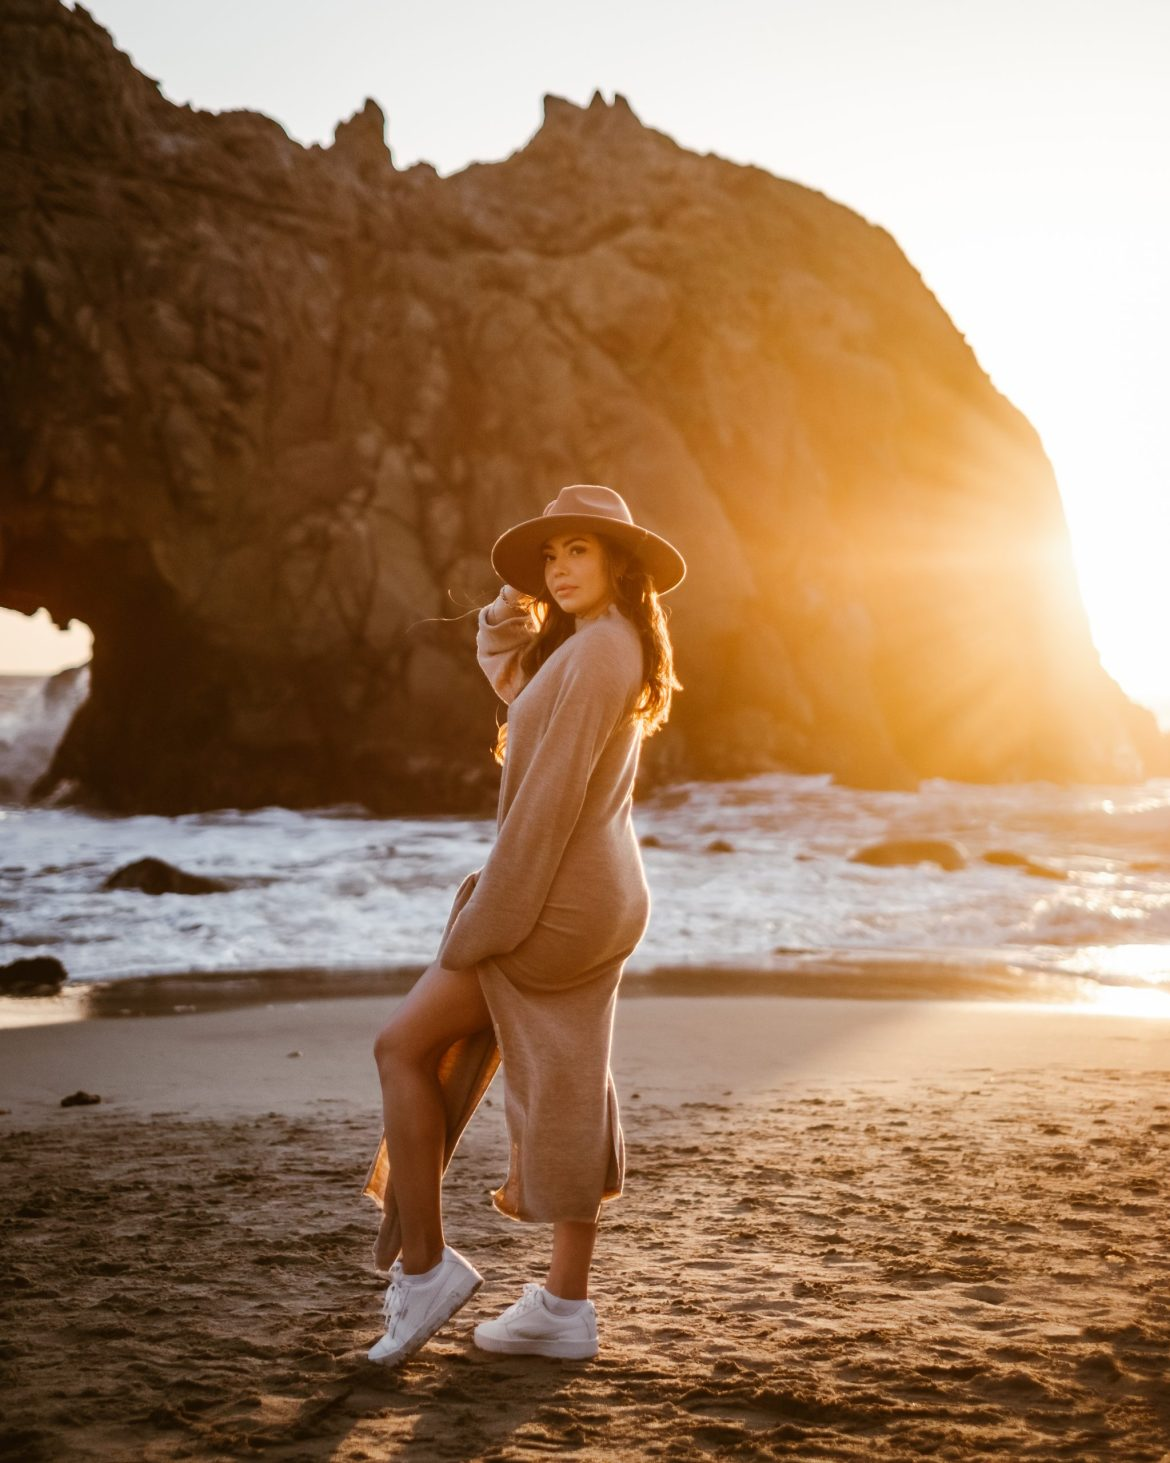 Golden Moments on a Golden Coast - sunset photoshoot, Big Sur photoshoot, Big Sur outfit, creative photography, photo ideas, California, outfit ideas, beach outfit